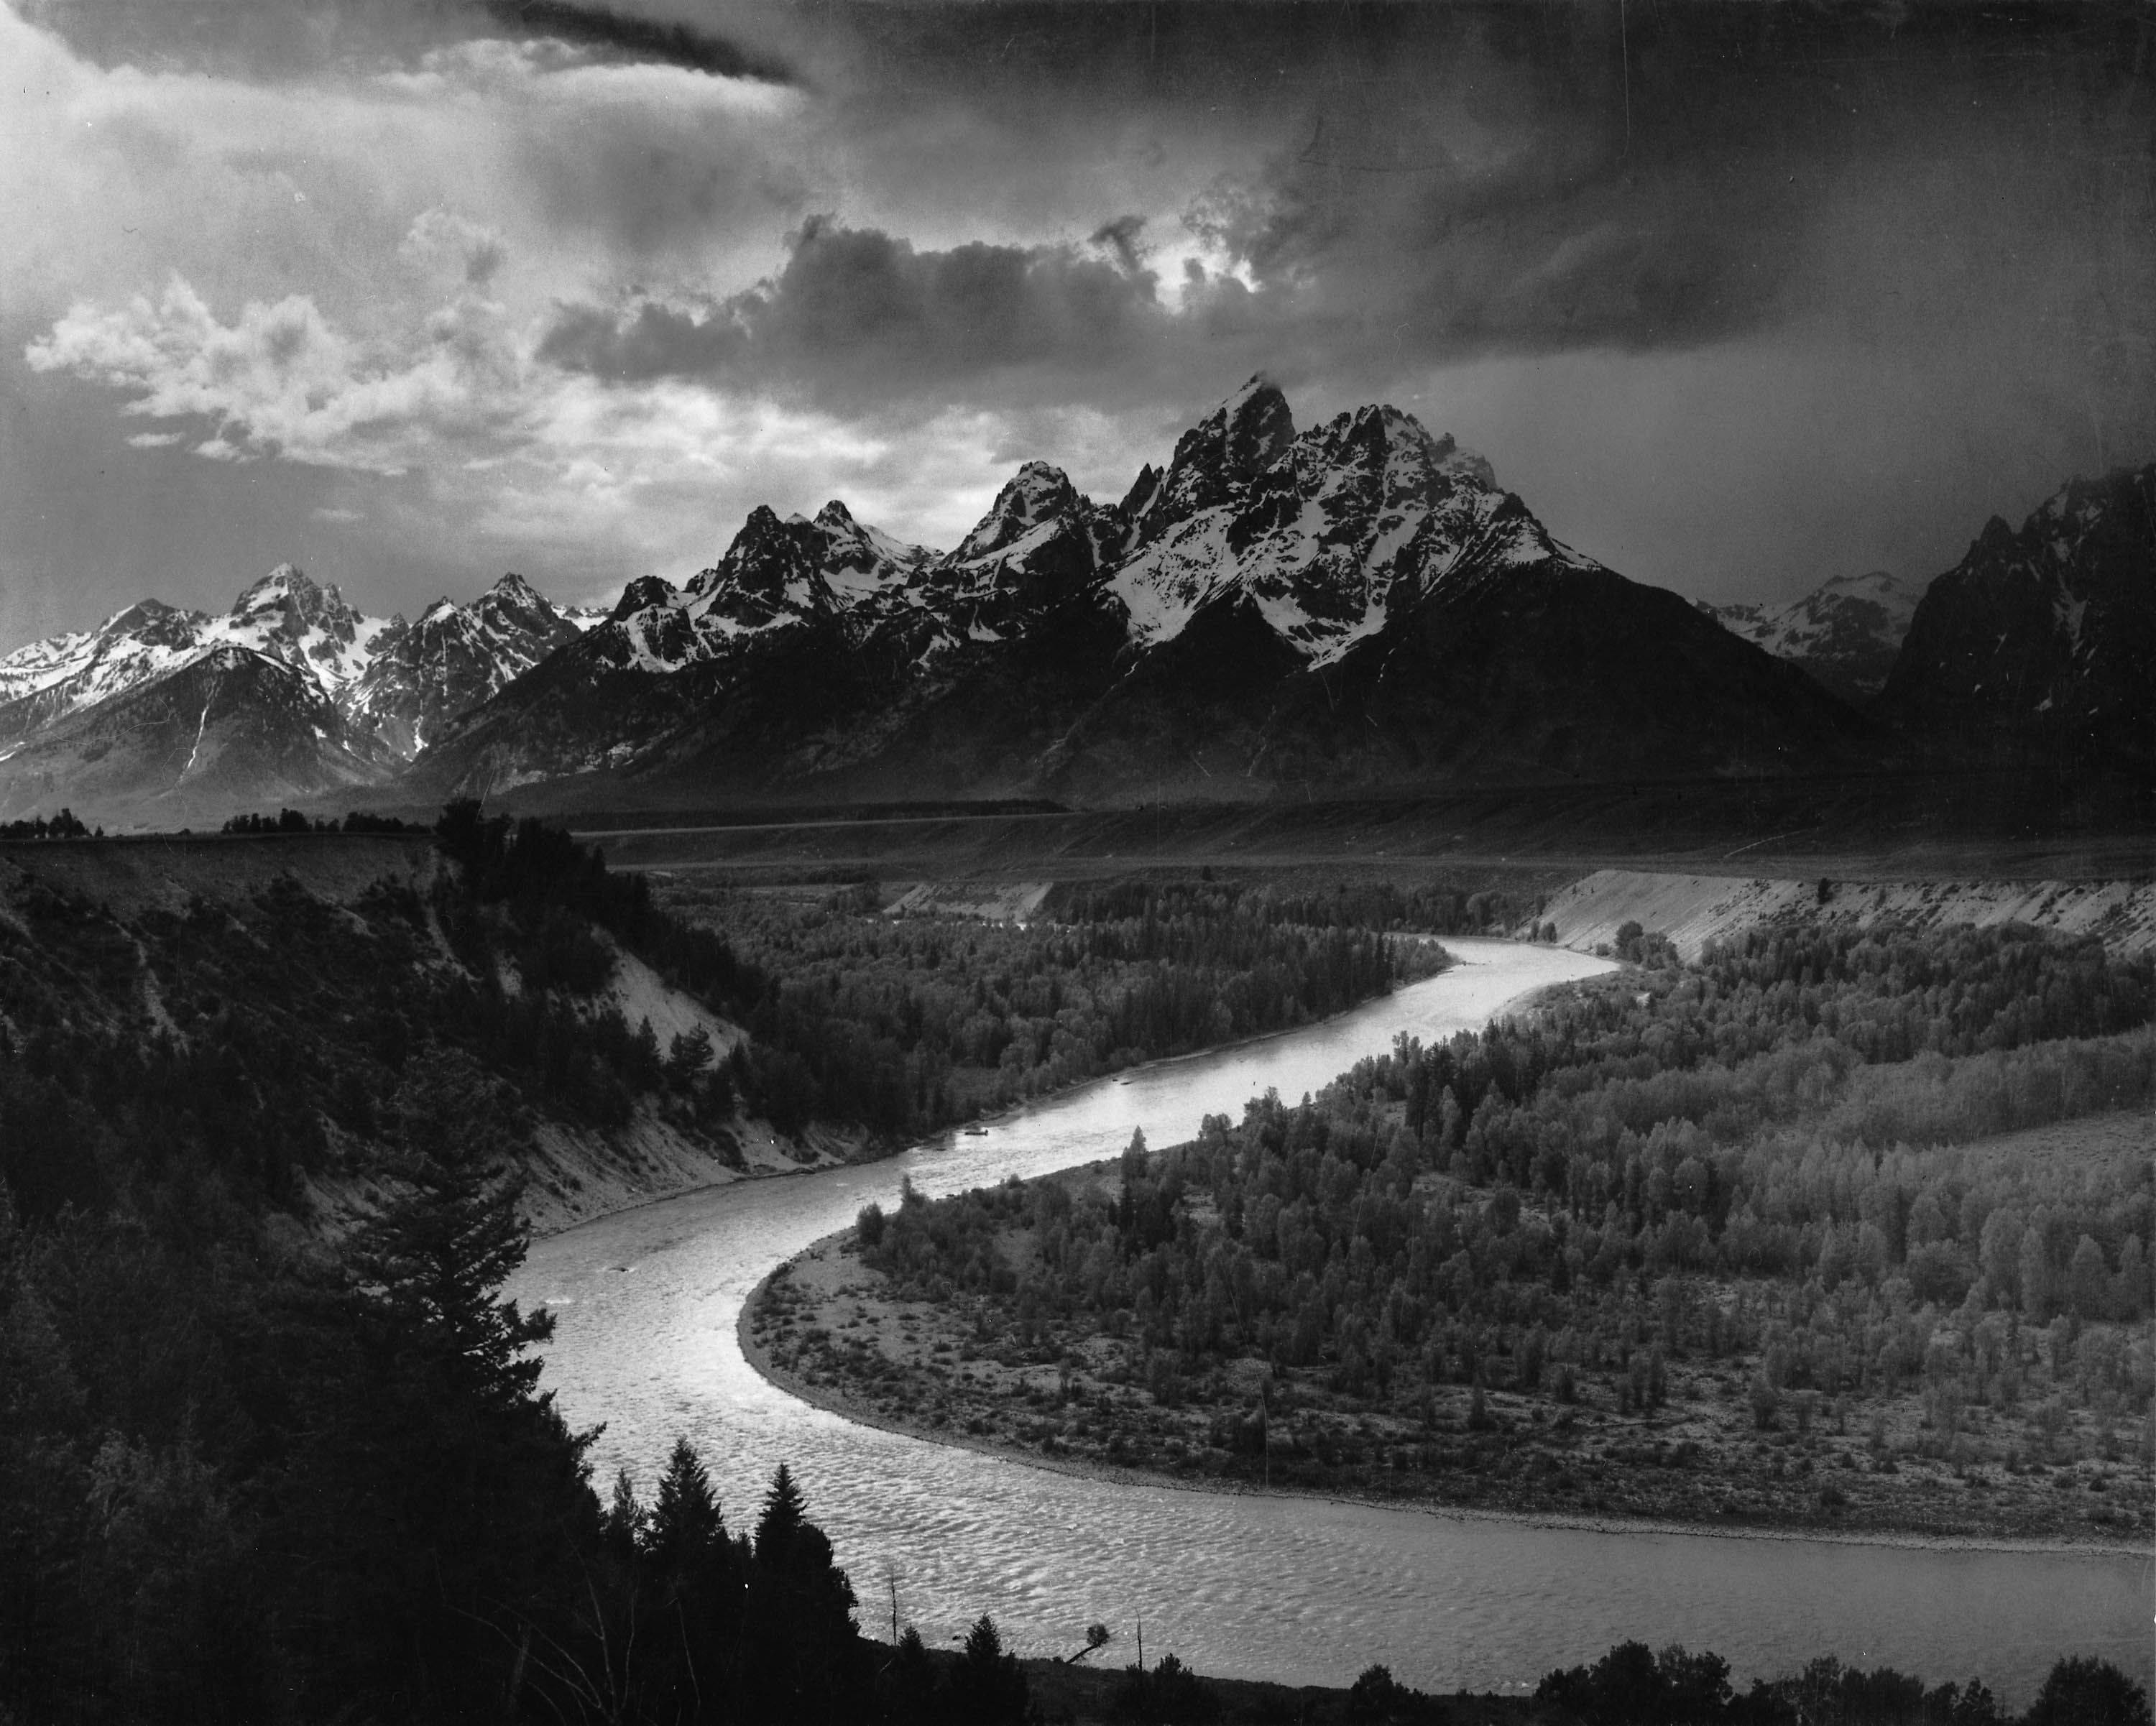 http://www.archives.gov/press/press-kits/picturing-the-century-photos/images/tetons-snake-river.jpg